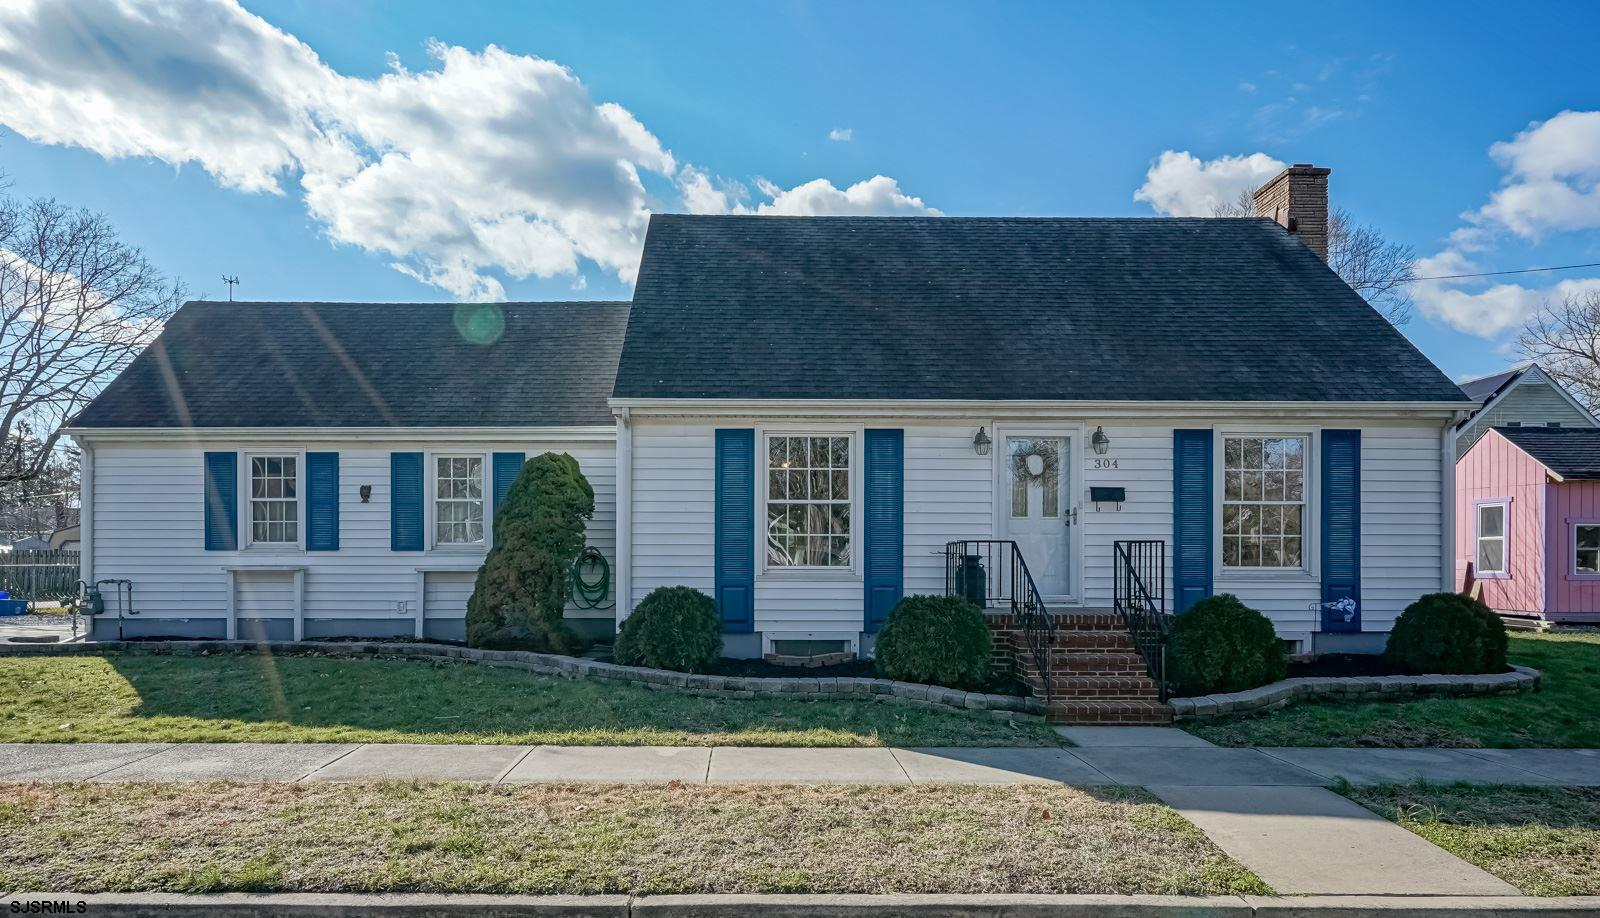 Gorgeous Cape Cod on corner lot with full basement and side entry 2 car garage. HW floor throughout